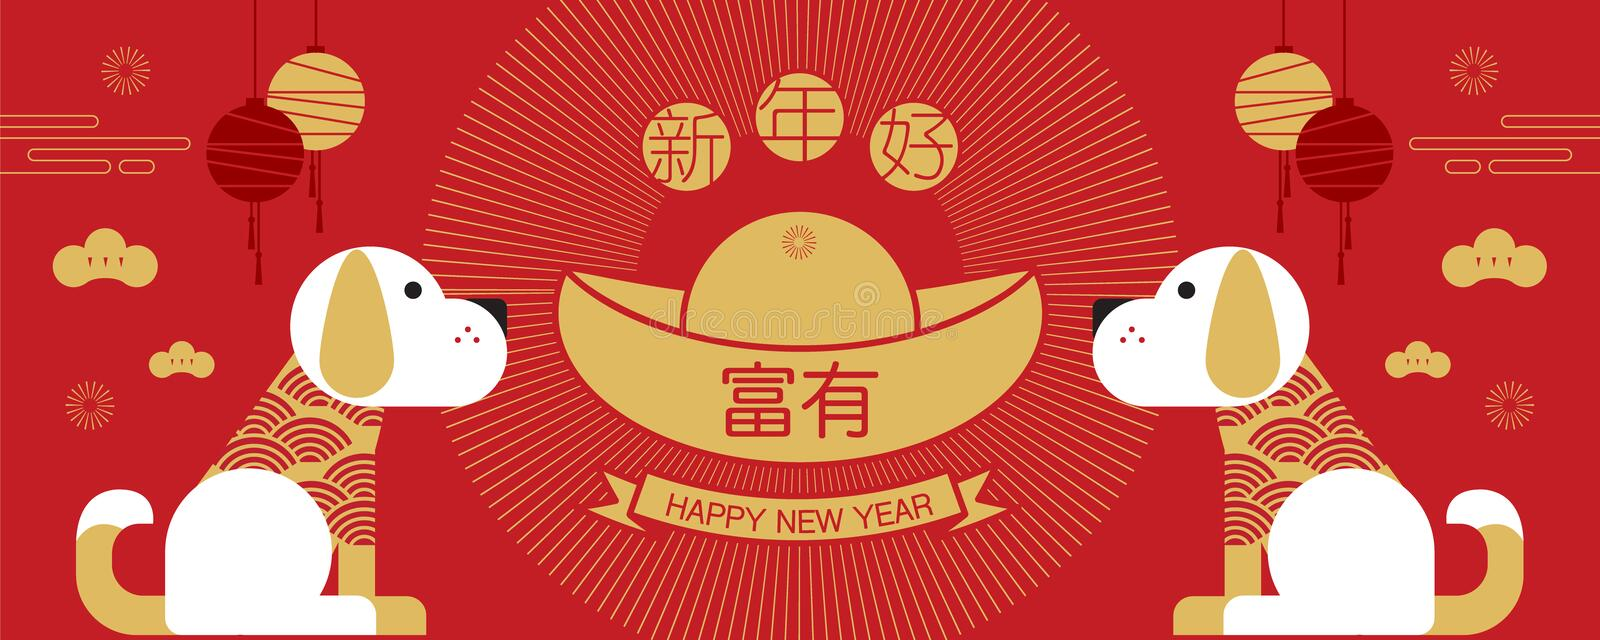 Happy new year, 2018, Chinese new year greetings royalty free illustration